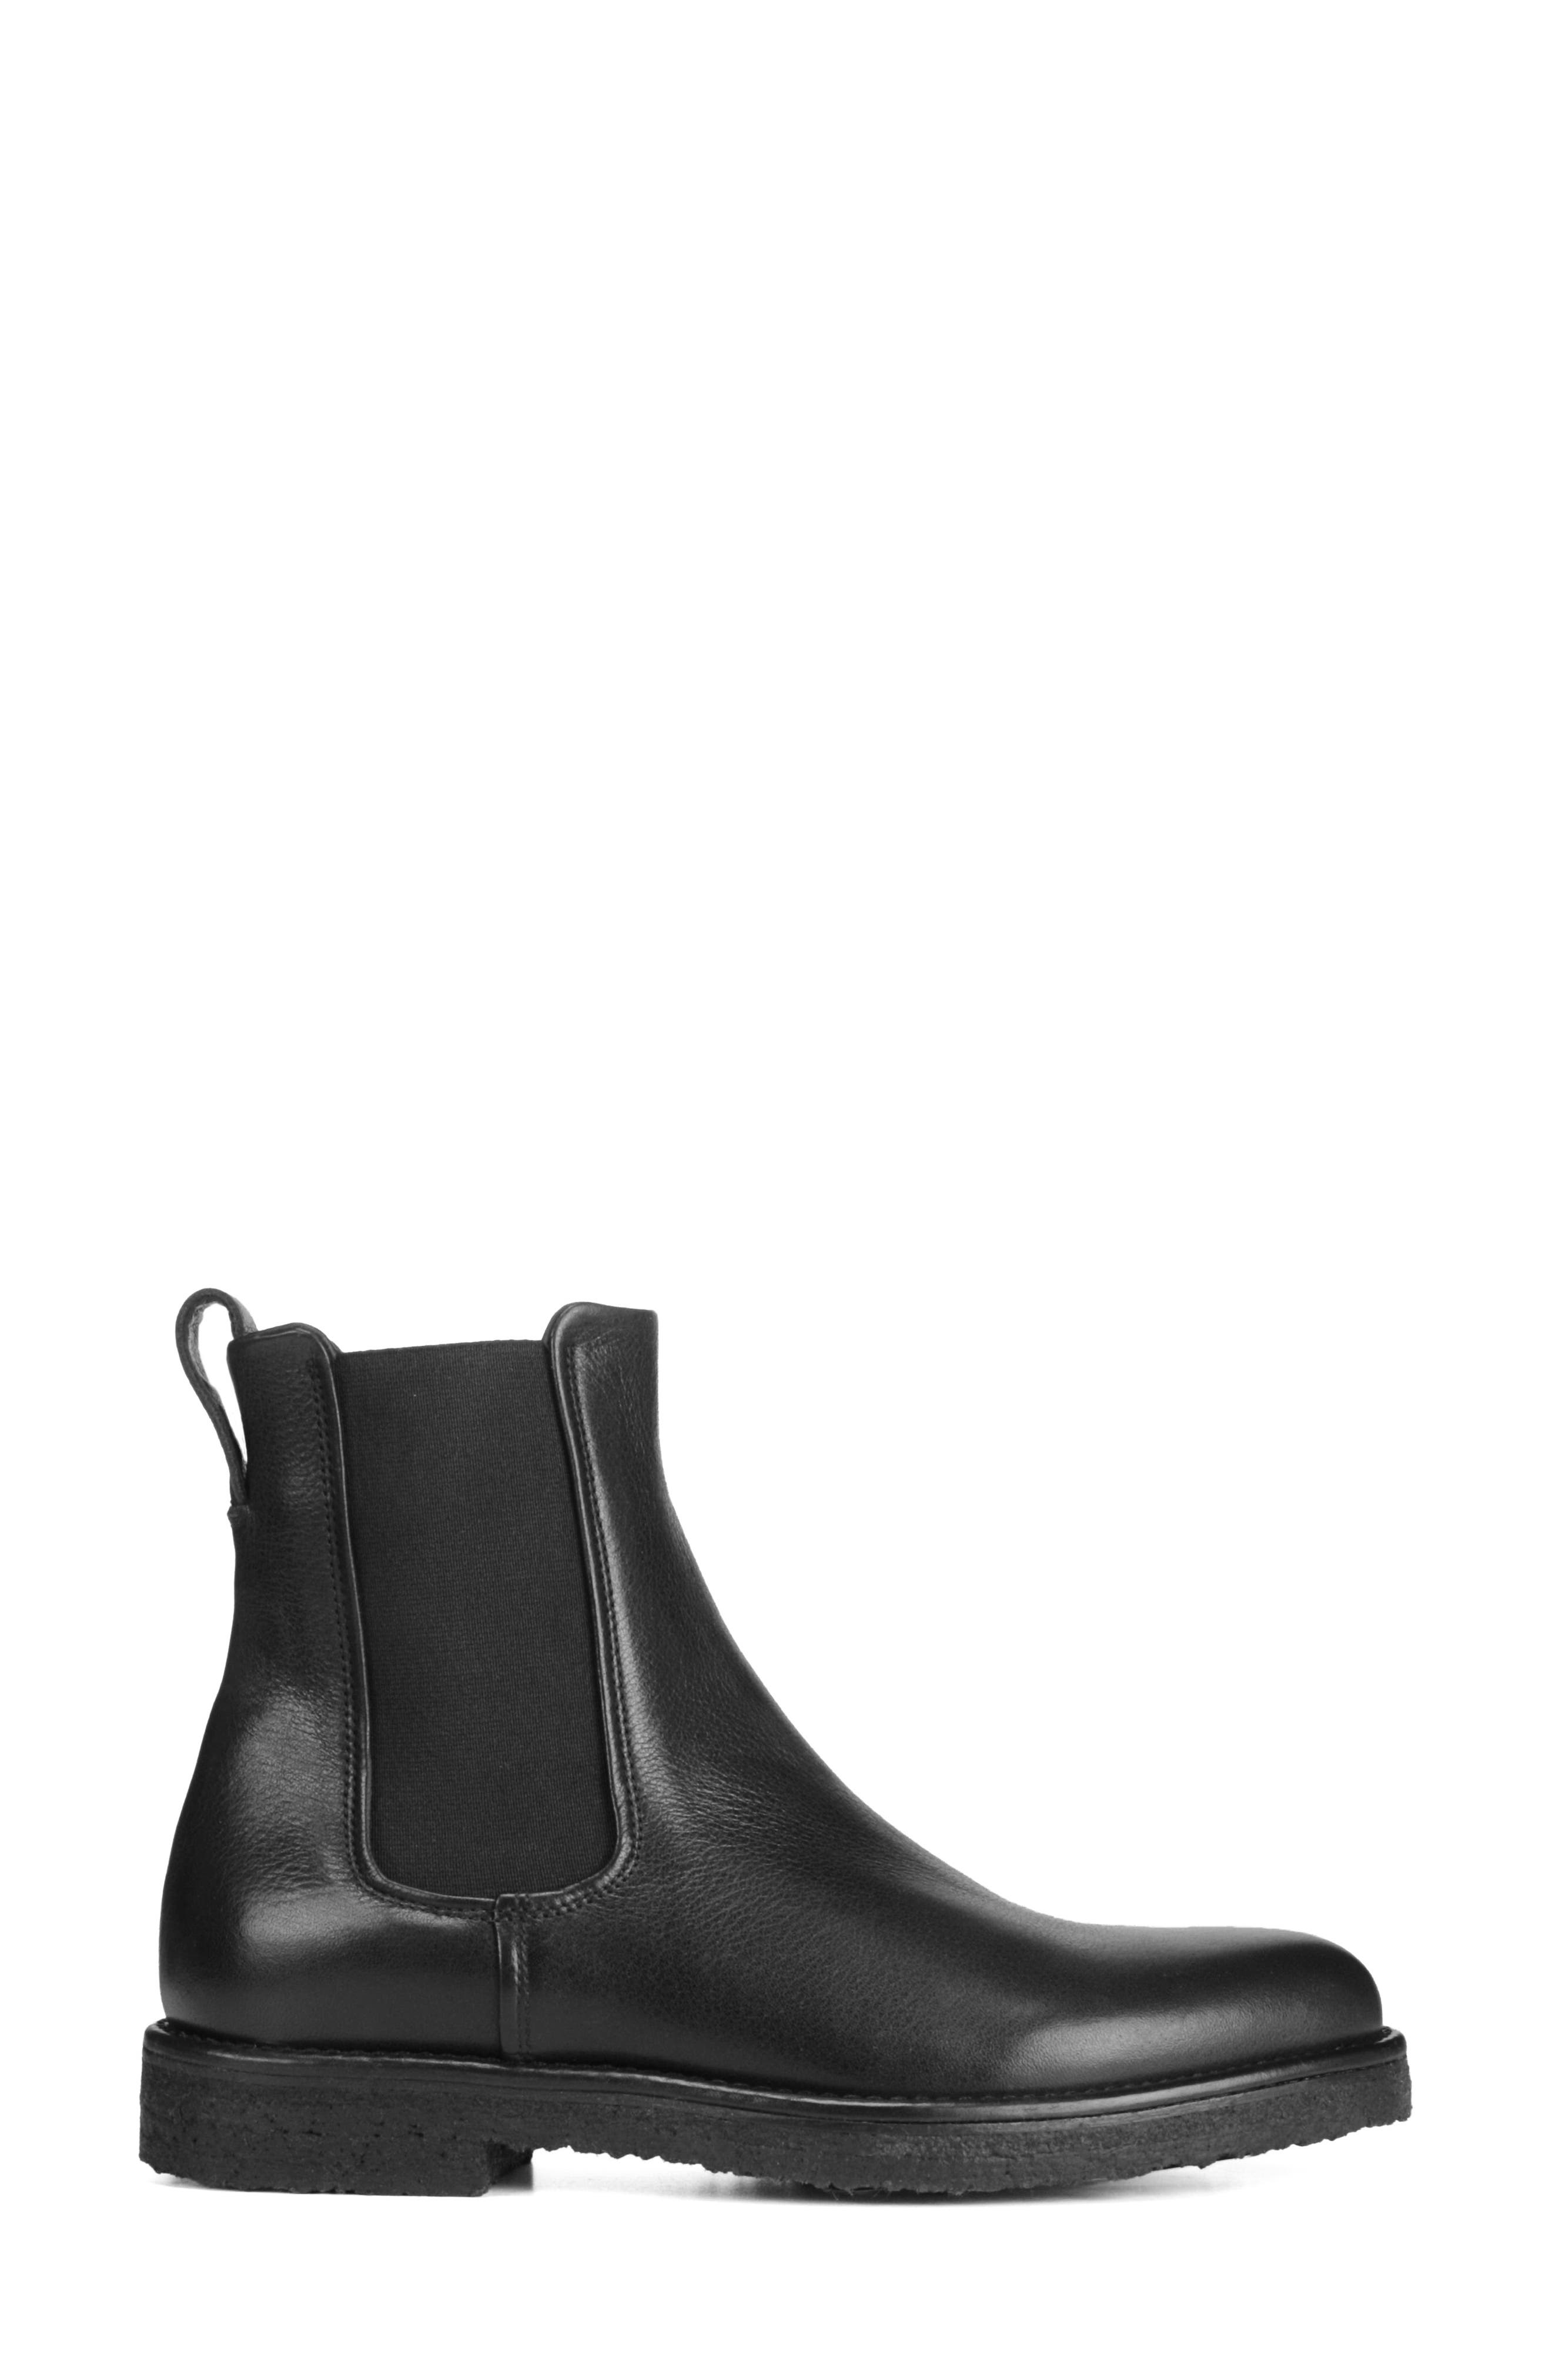 Cressler Chelsea Bootie,                             Alternate thumbnail 3, color,                             001